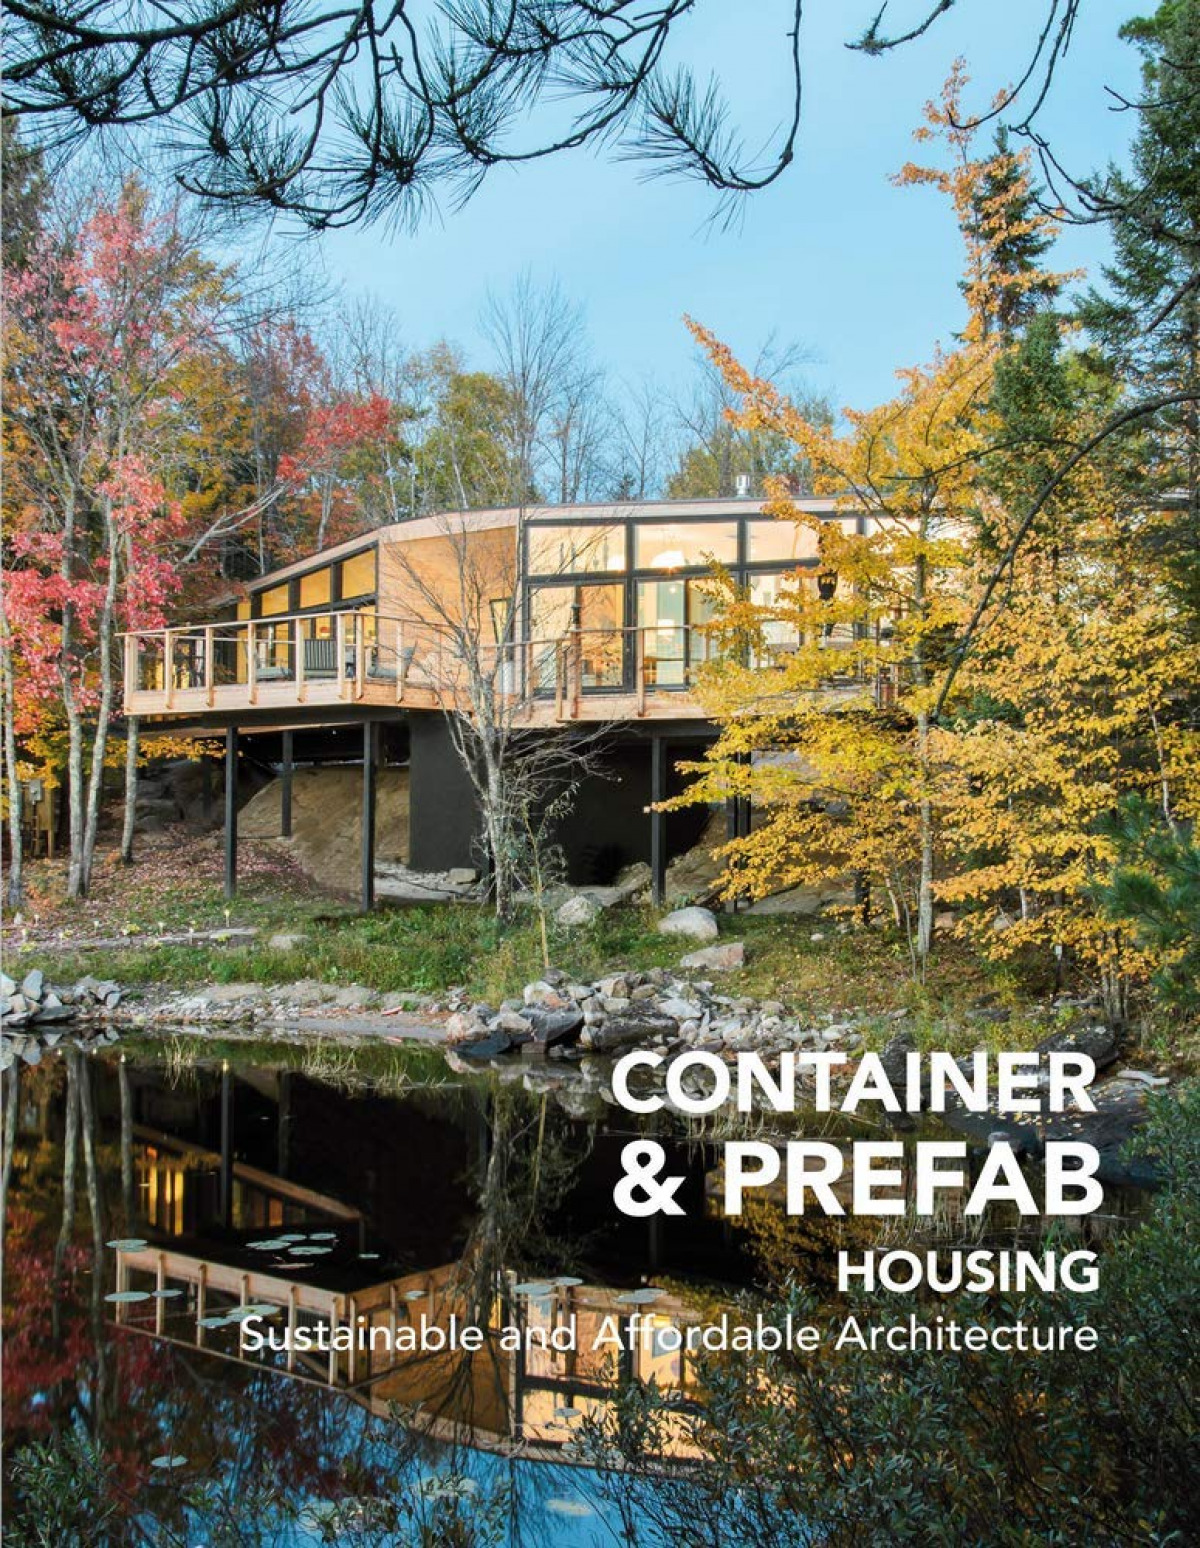 CONTAINER & PREFAB HOUSING. Sustainable and Affordable Architectu